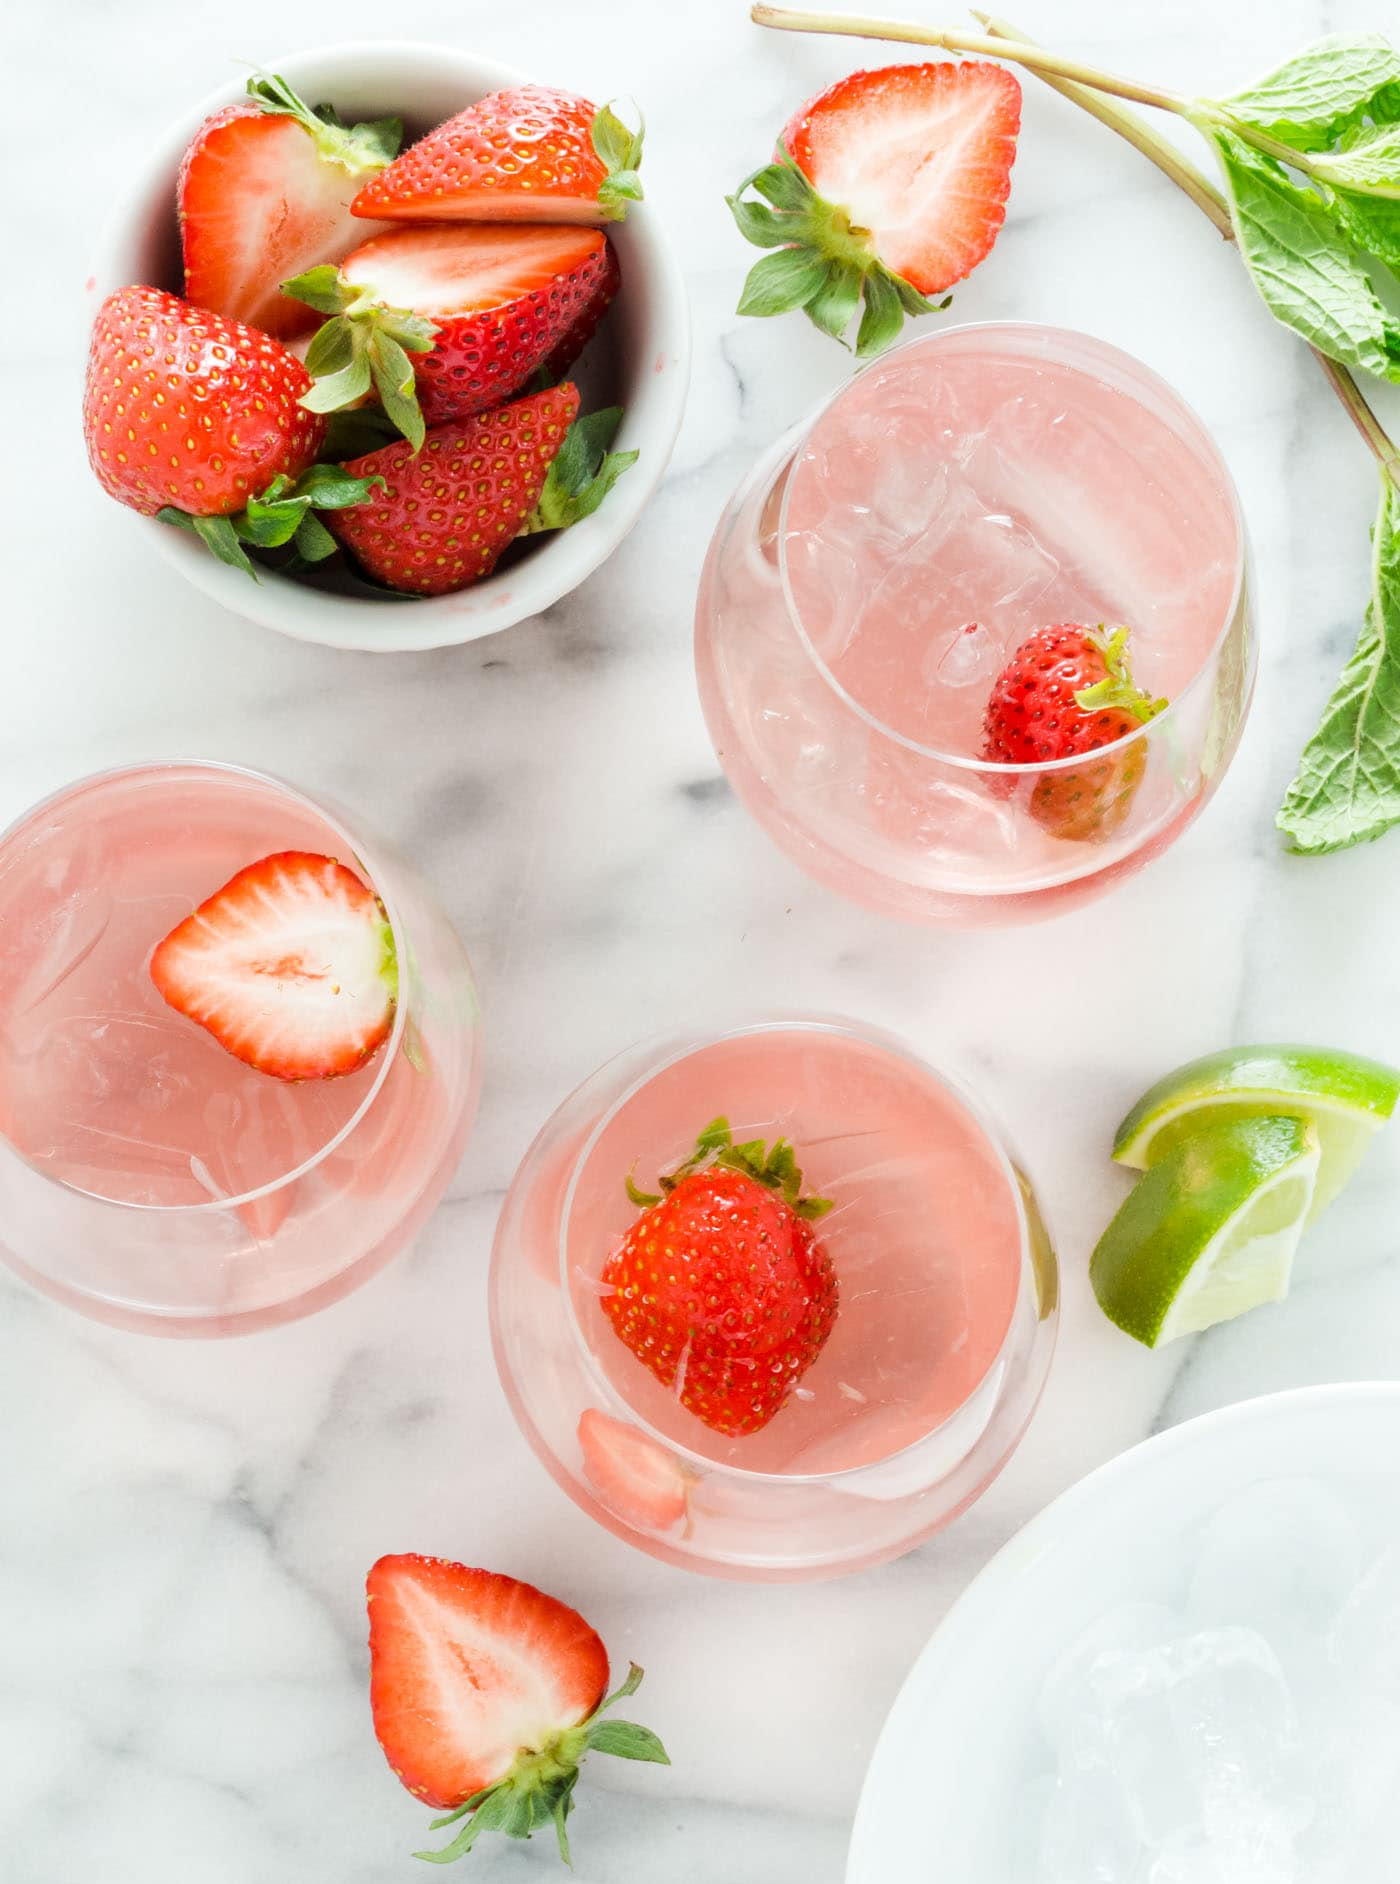 Hosting a backyard BBQ? Whip up a pitcher of these Bubbly Strawberry Rosé Mojitos for your guests and let them serve themselves while you enjoy the party.